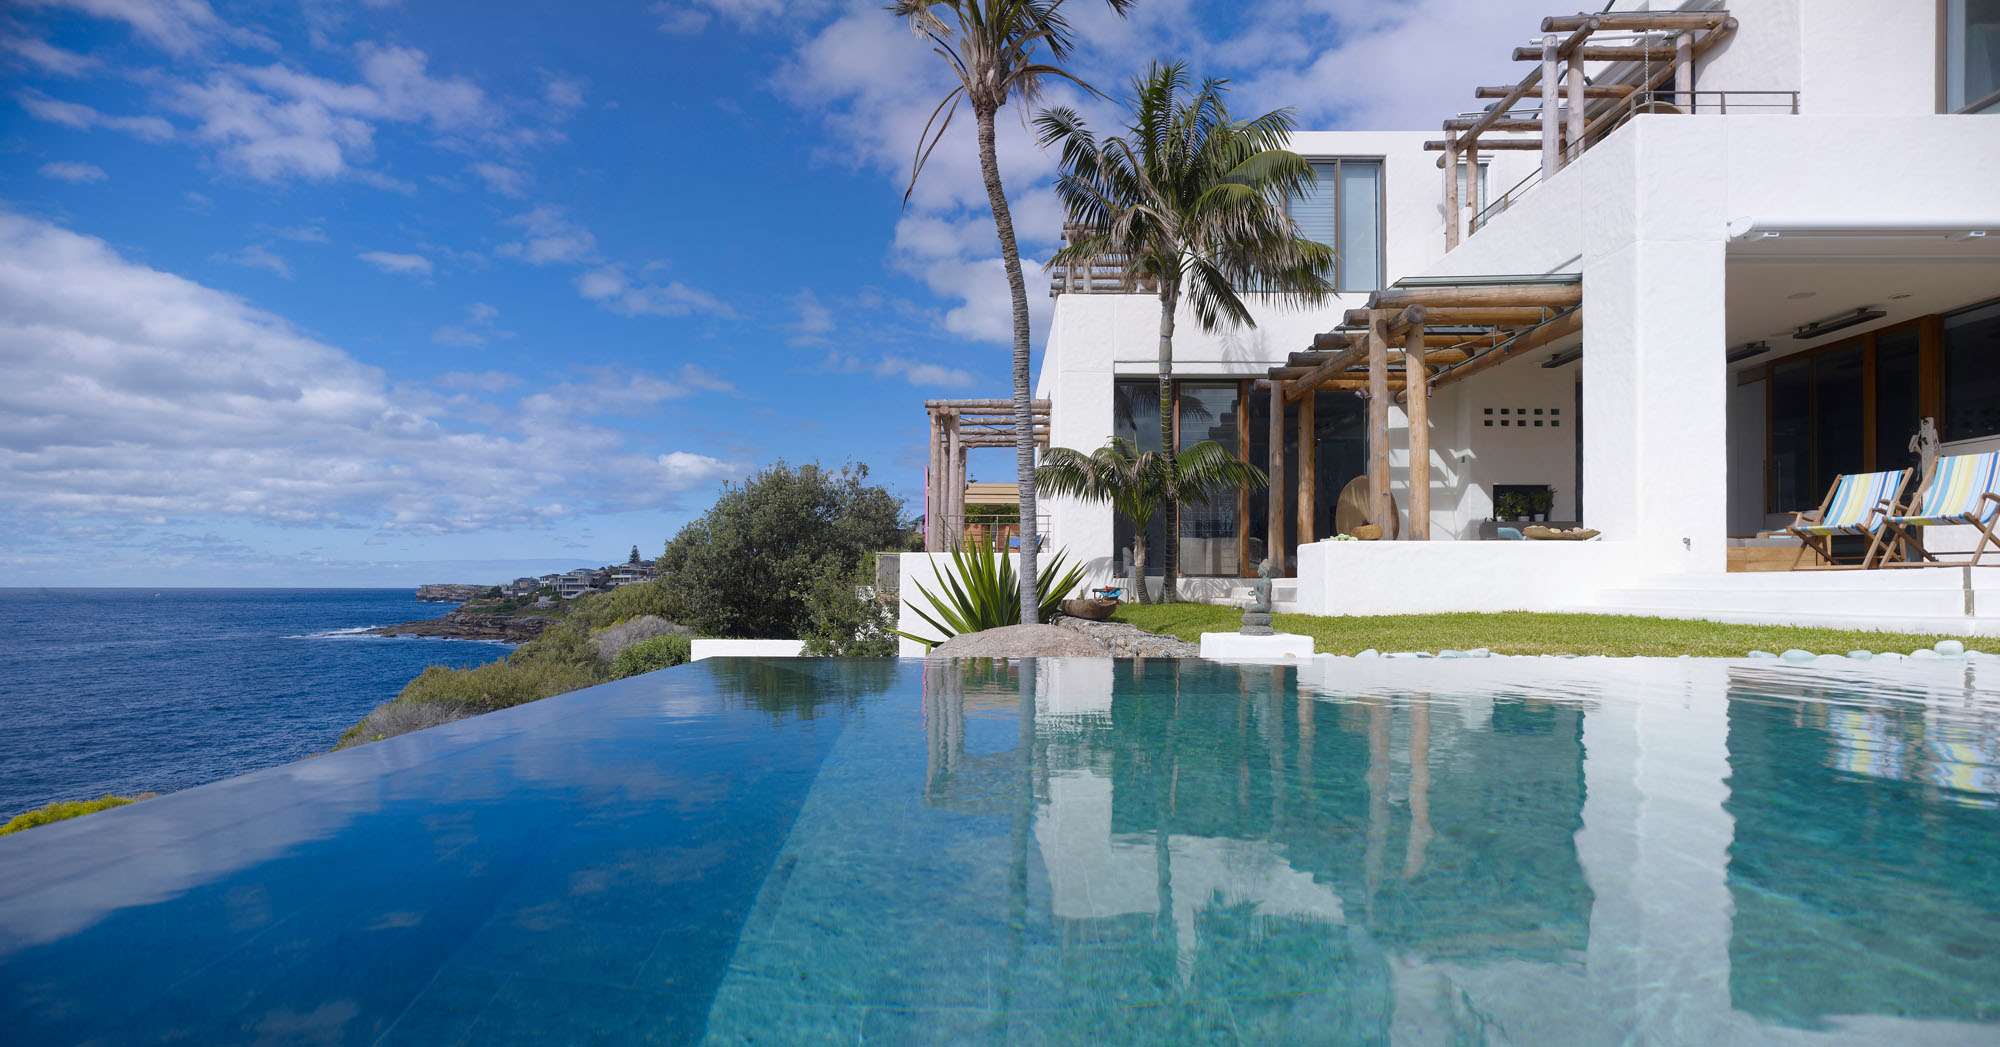 Infinity Pool, Beautiful Waterfront Home in Coogee, Australia